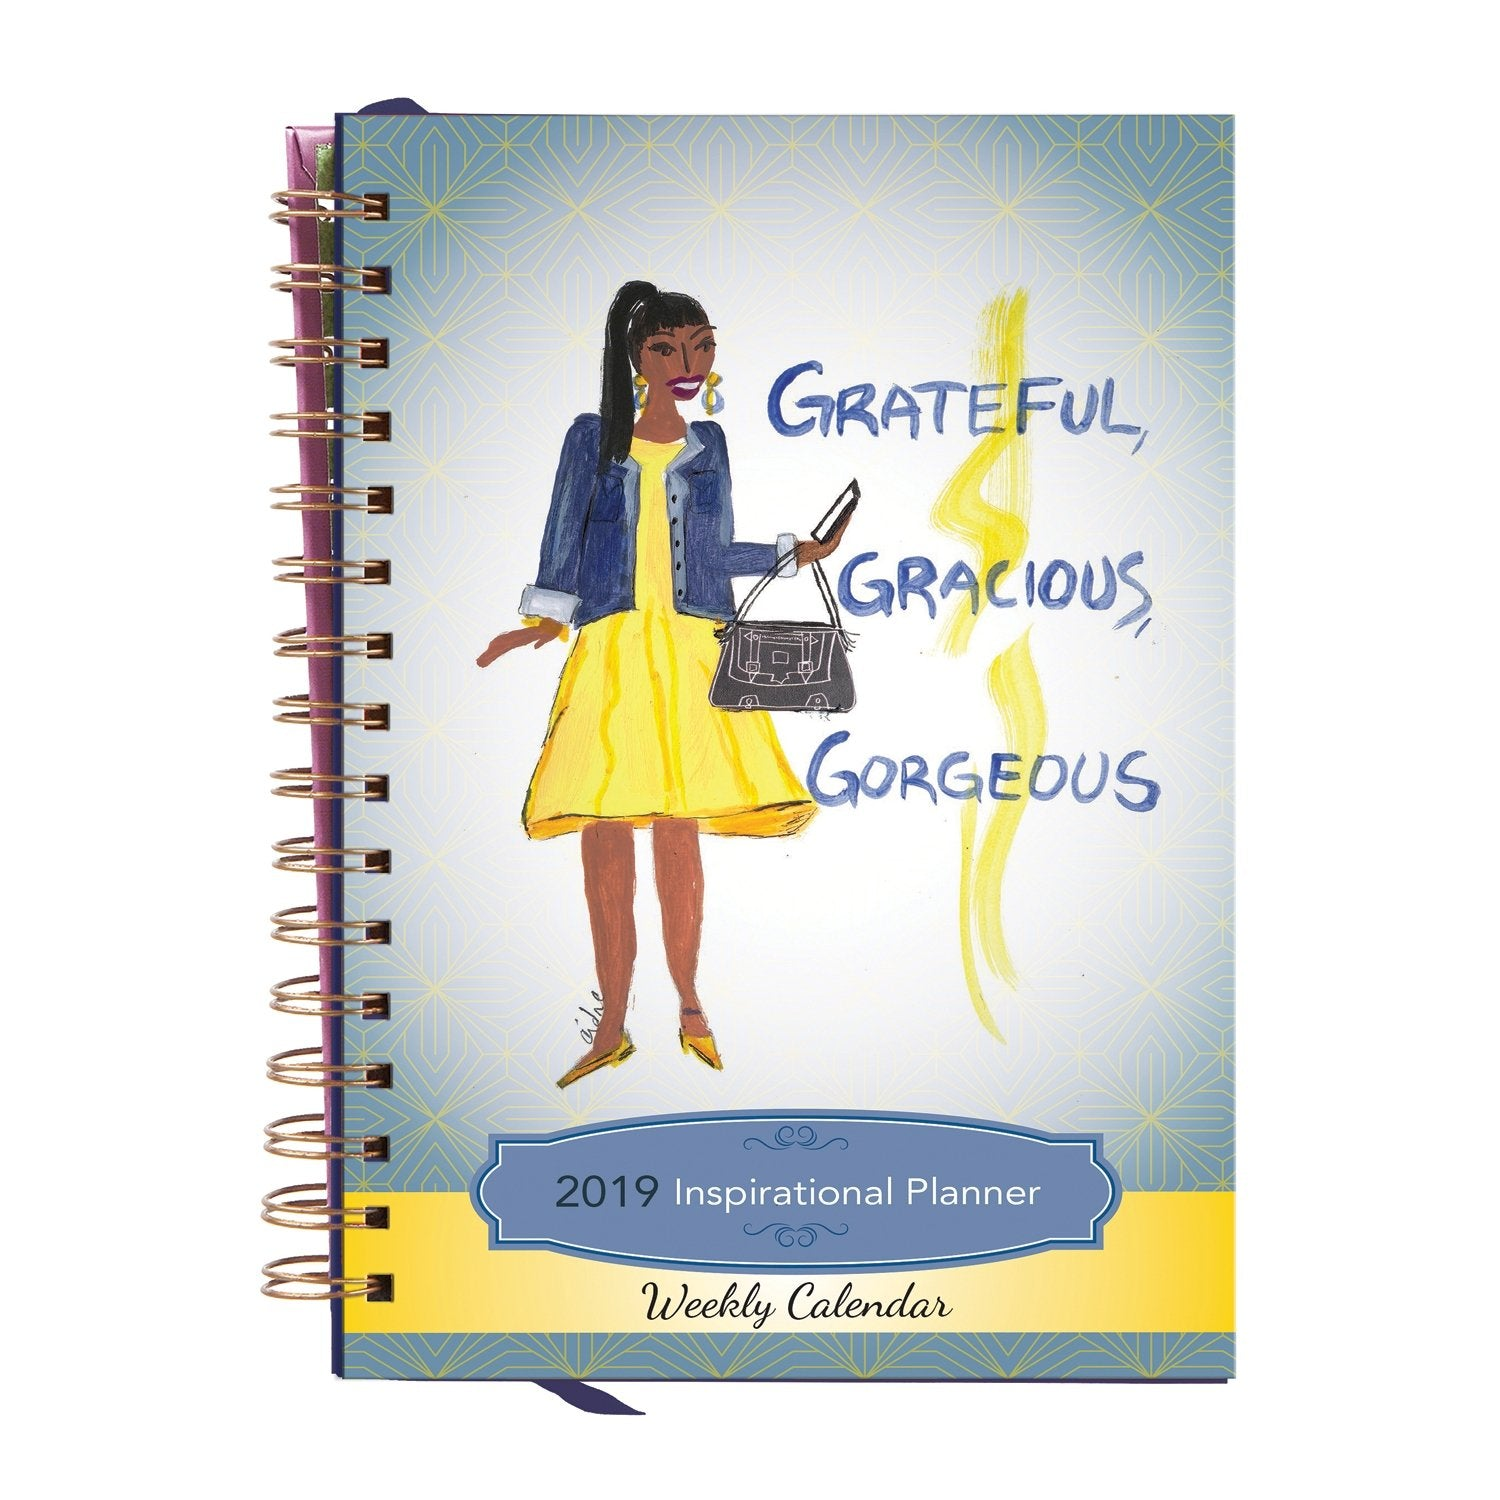 Grateful, Gracious and Gorgeous 2019 African American Inspirational Weekly Planner by Cidne Wallace